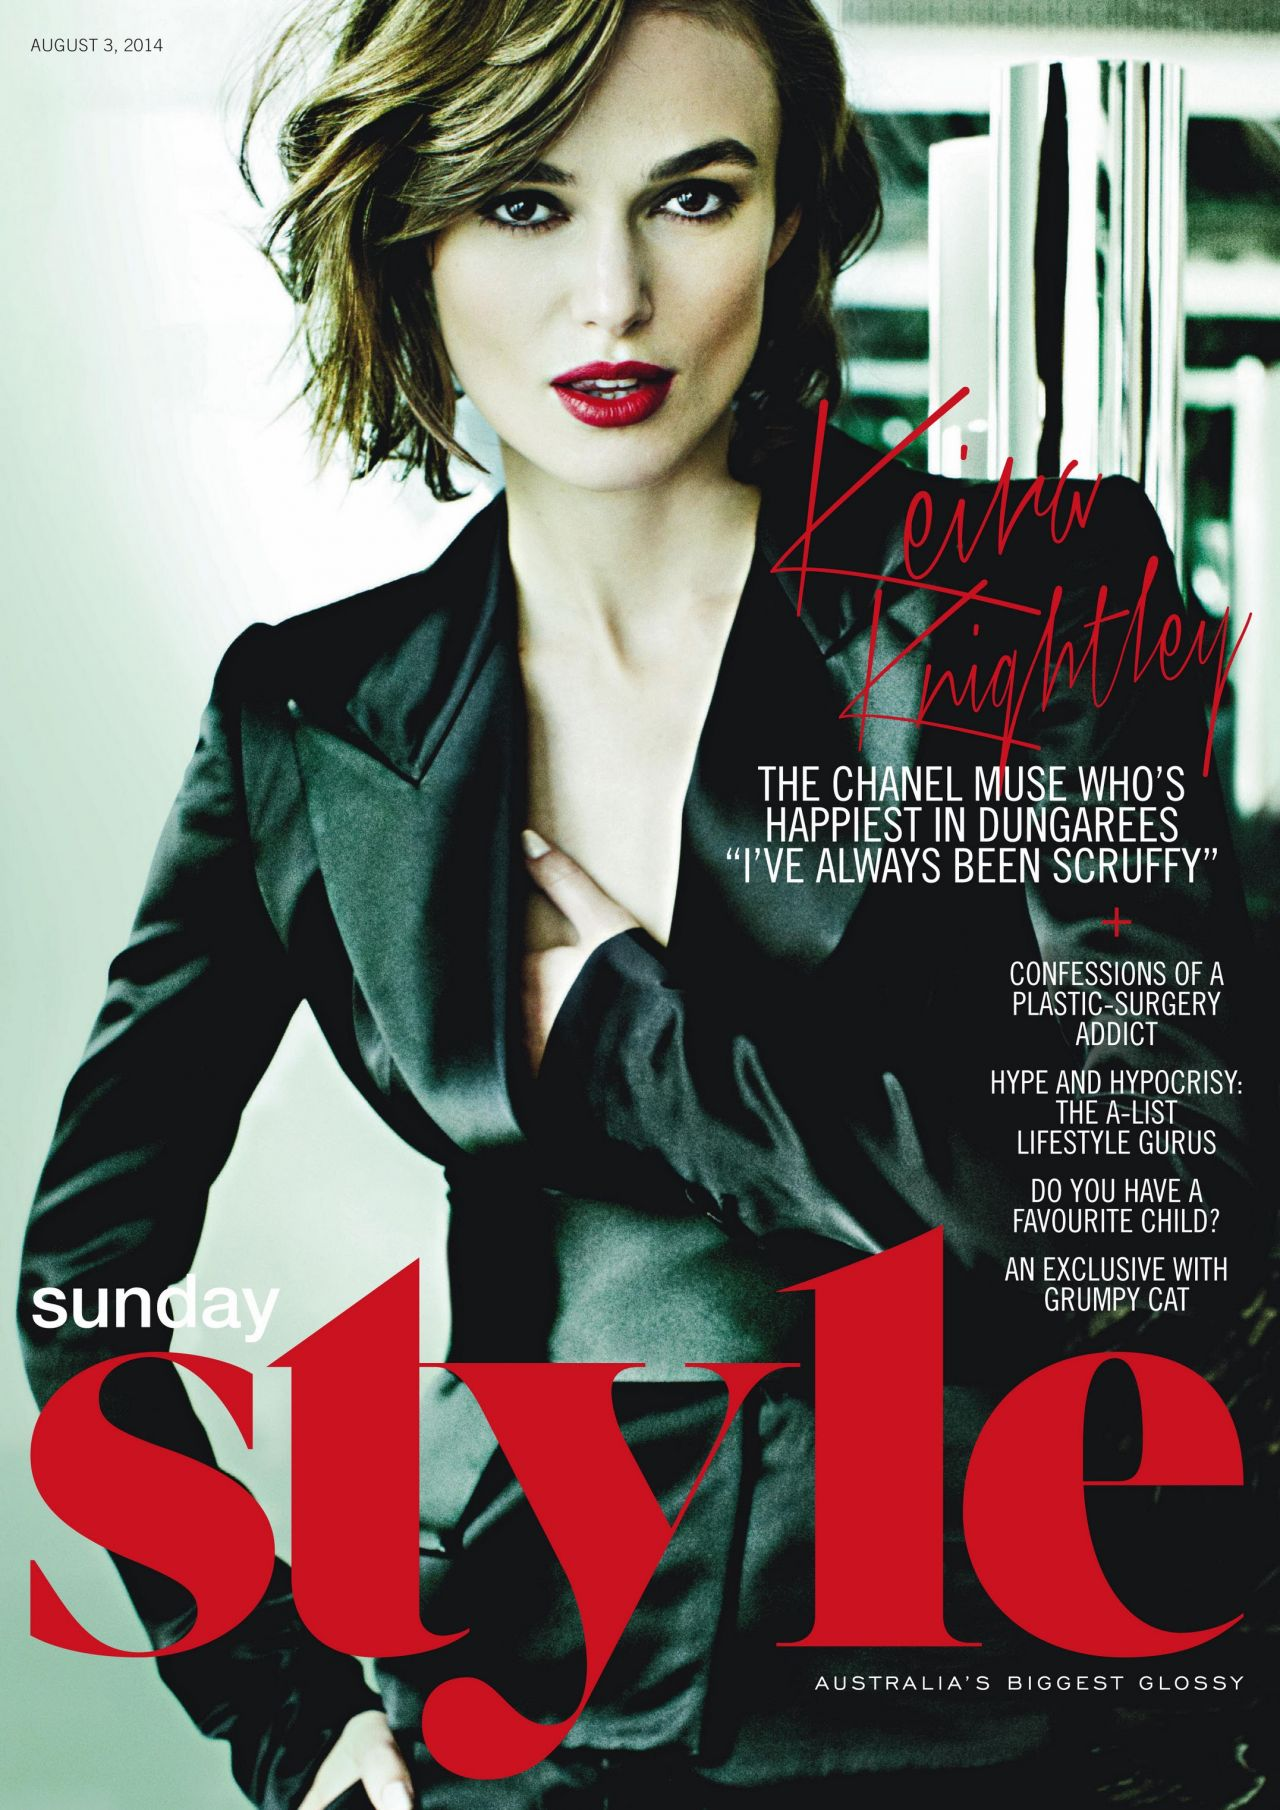 Keira Knightley - Sunday Style Magazine (Australia) - August 3, 2014